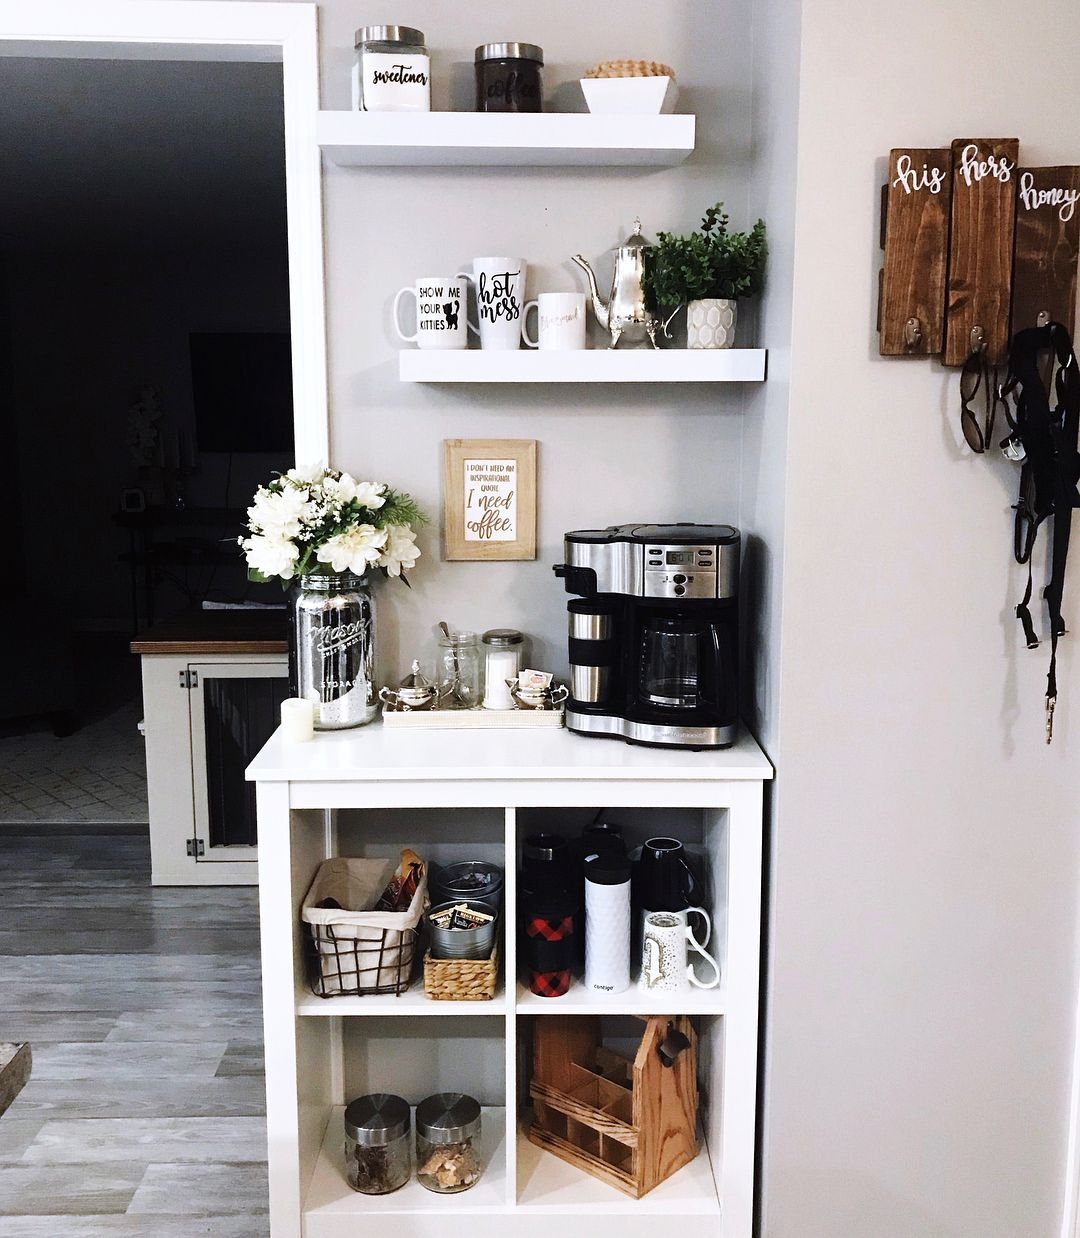 My new little coffee bar